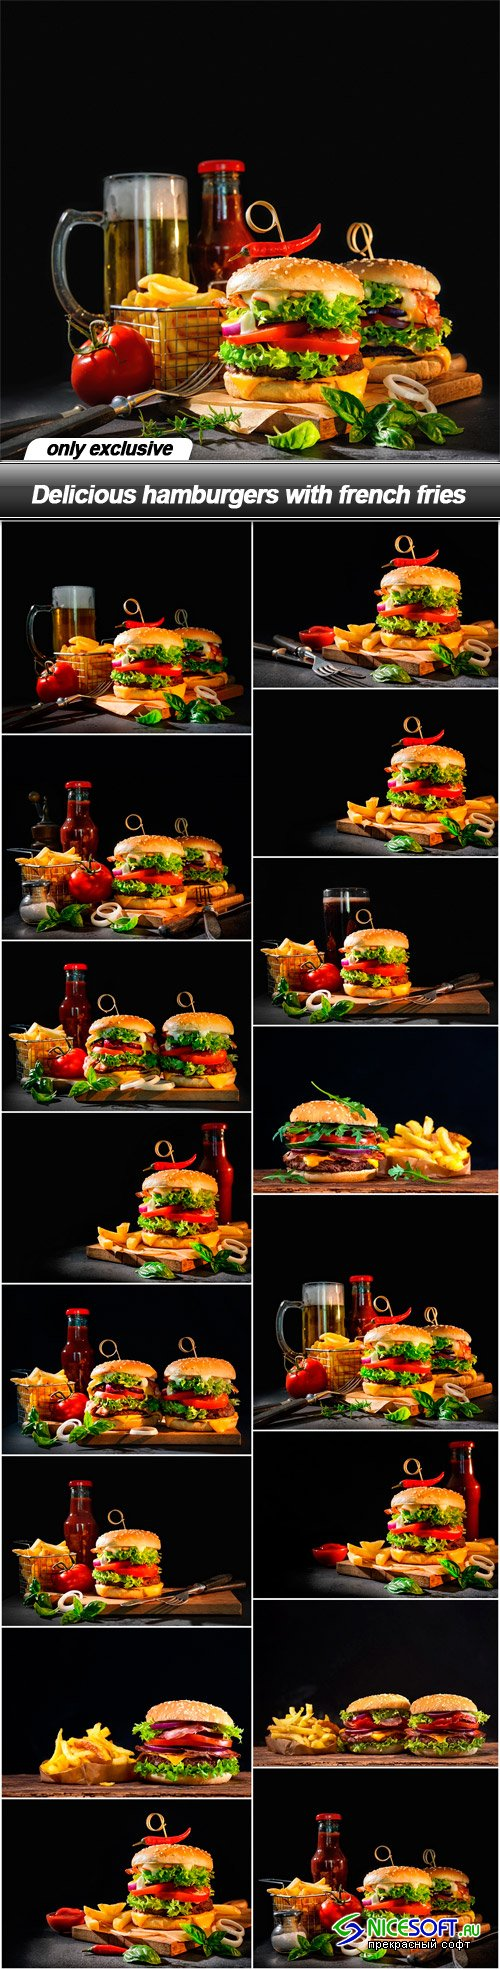 Delicious hamburgers with french fries